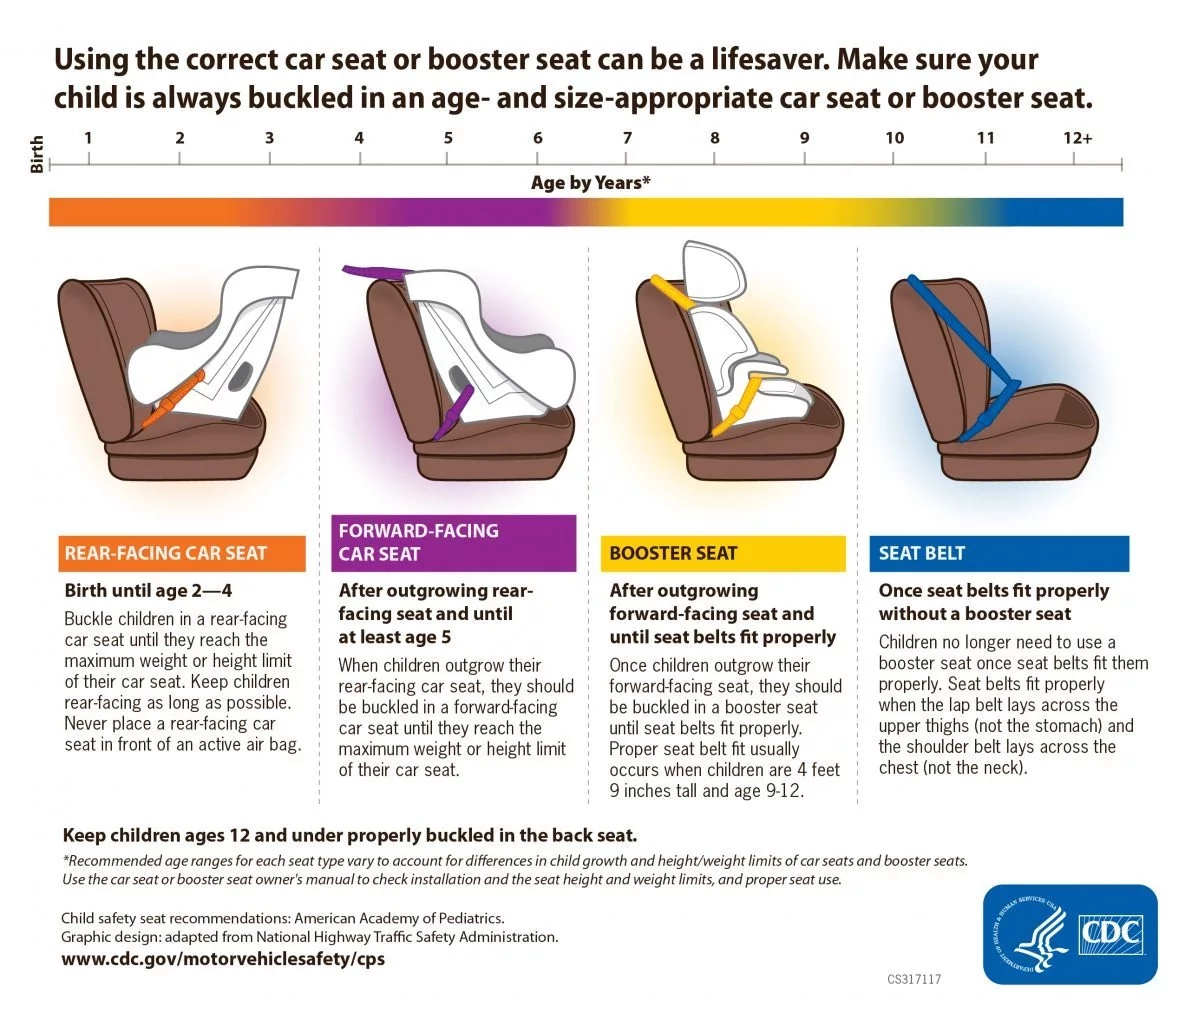 Seat front in facing seat car rear HELP! Rear